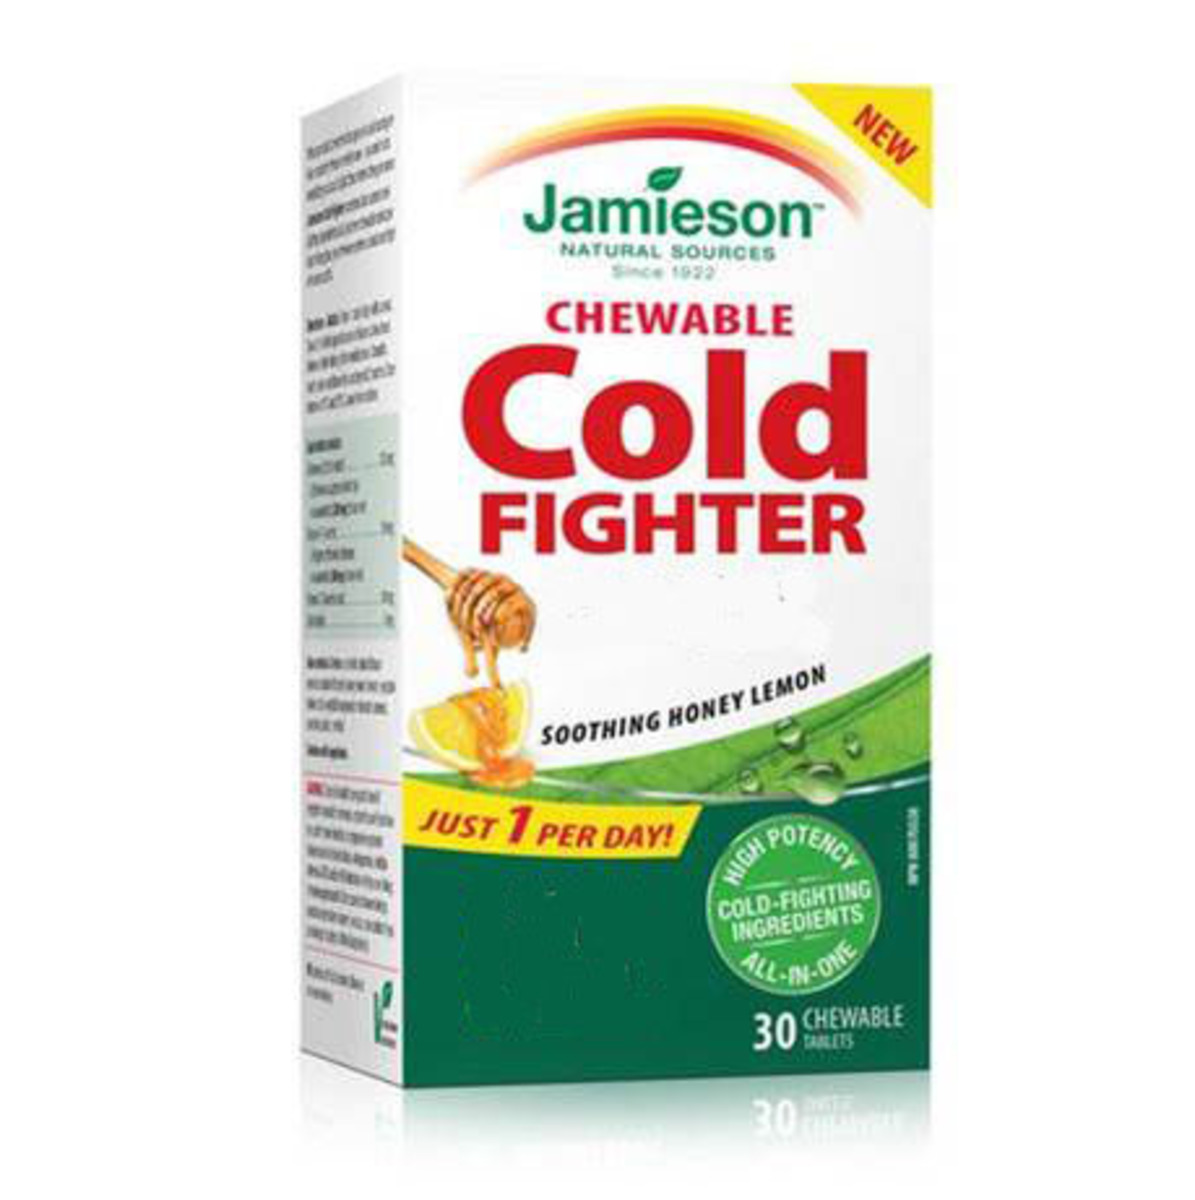 Cold Fighter Chewable 30 tablets